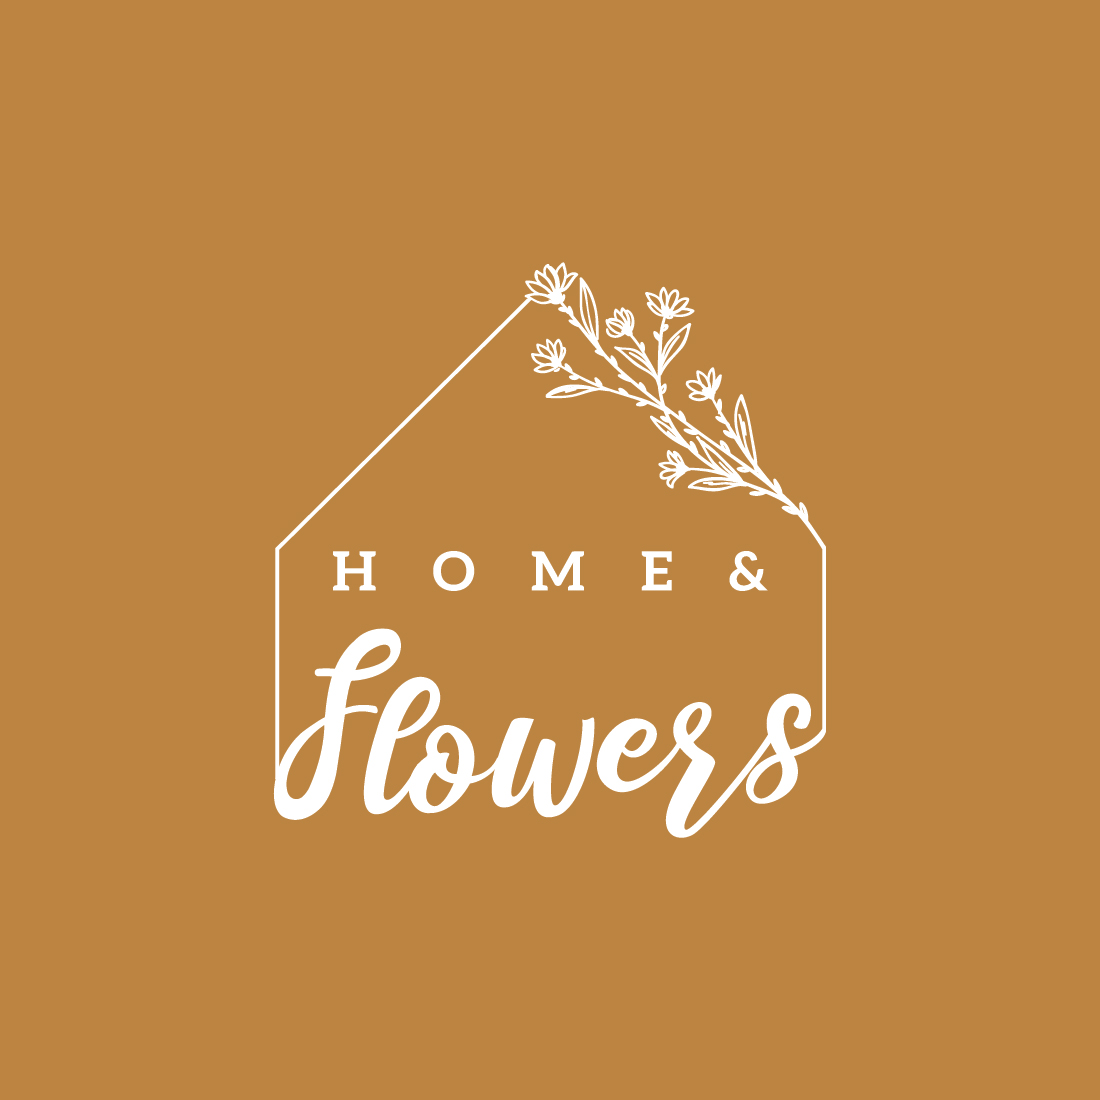 HOME & FLOWERS